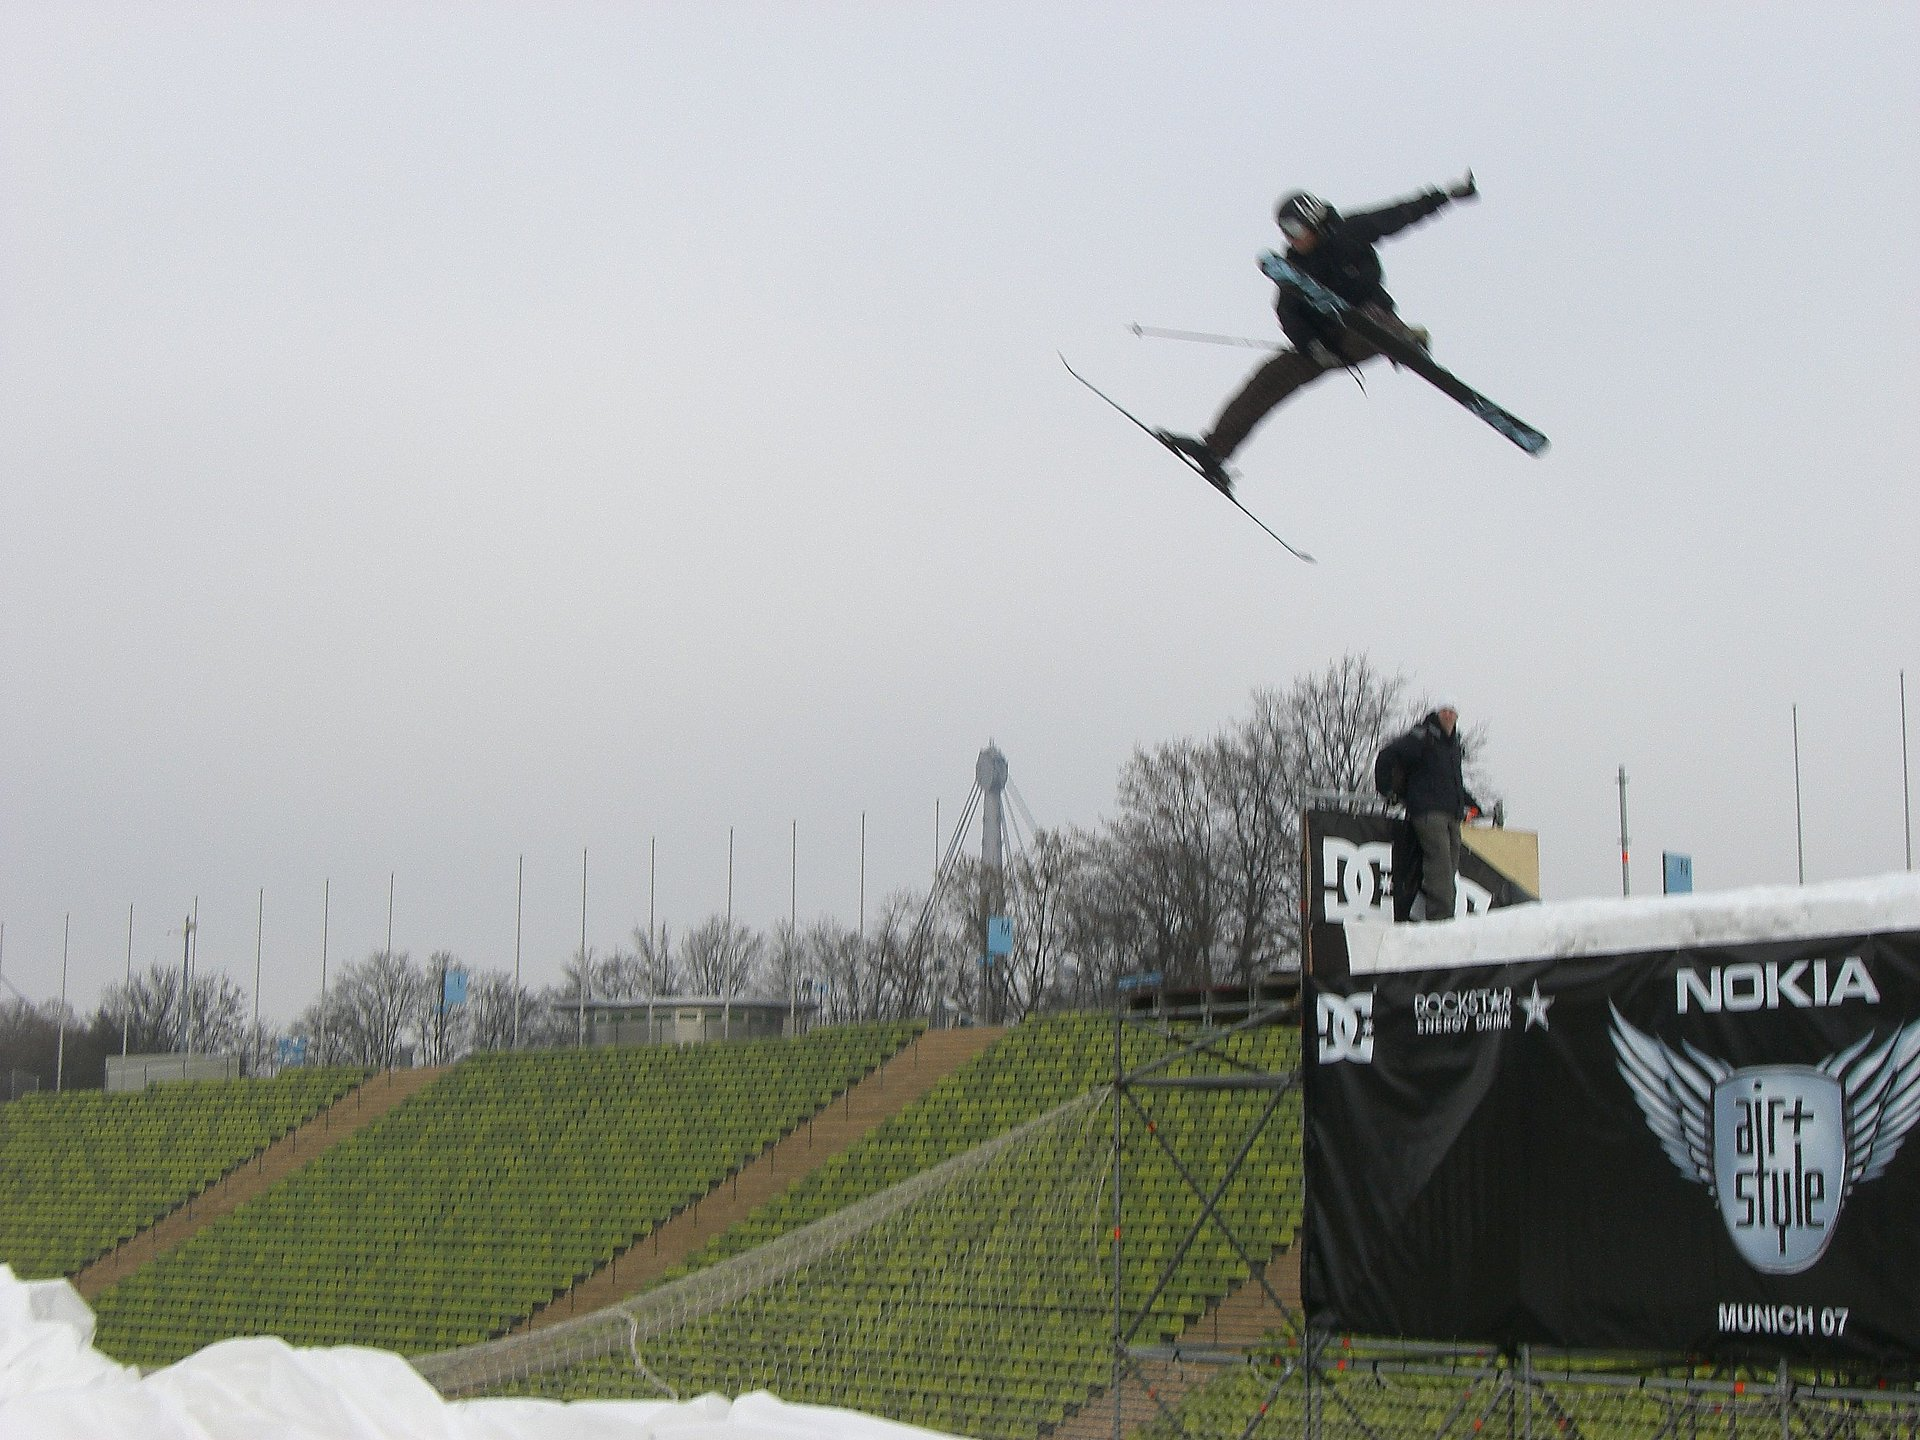 """testing"" the air & style in munich"